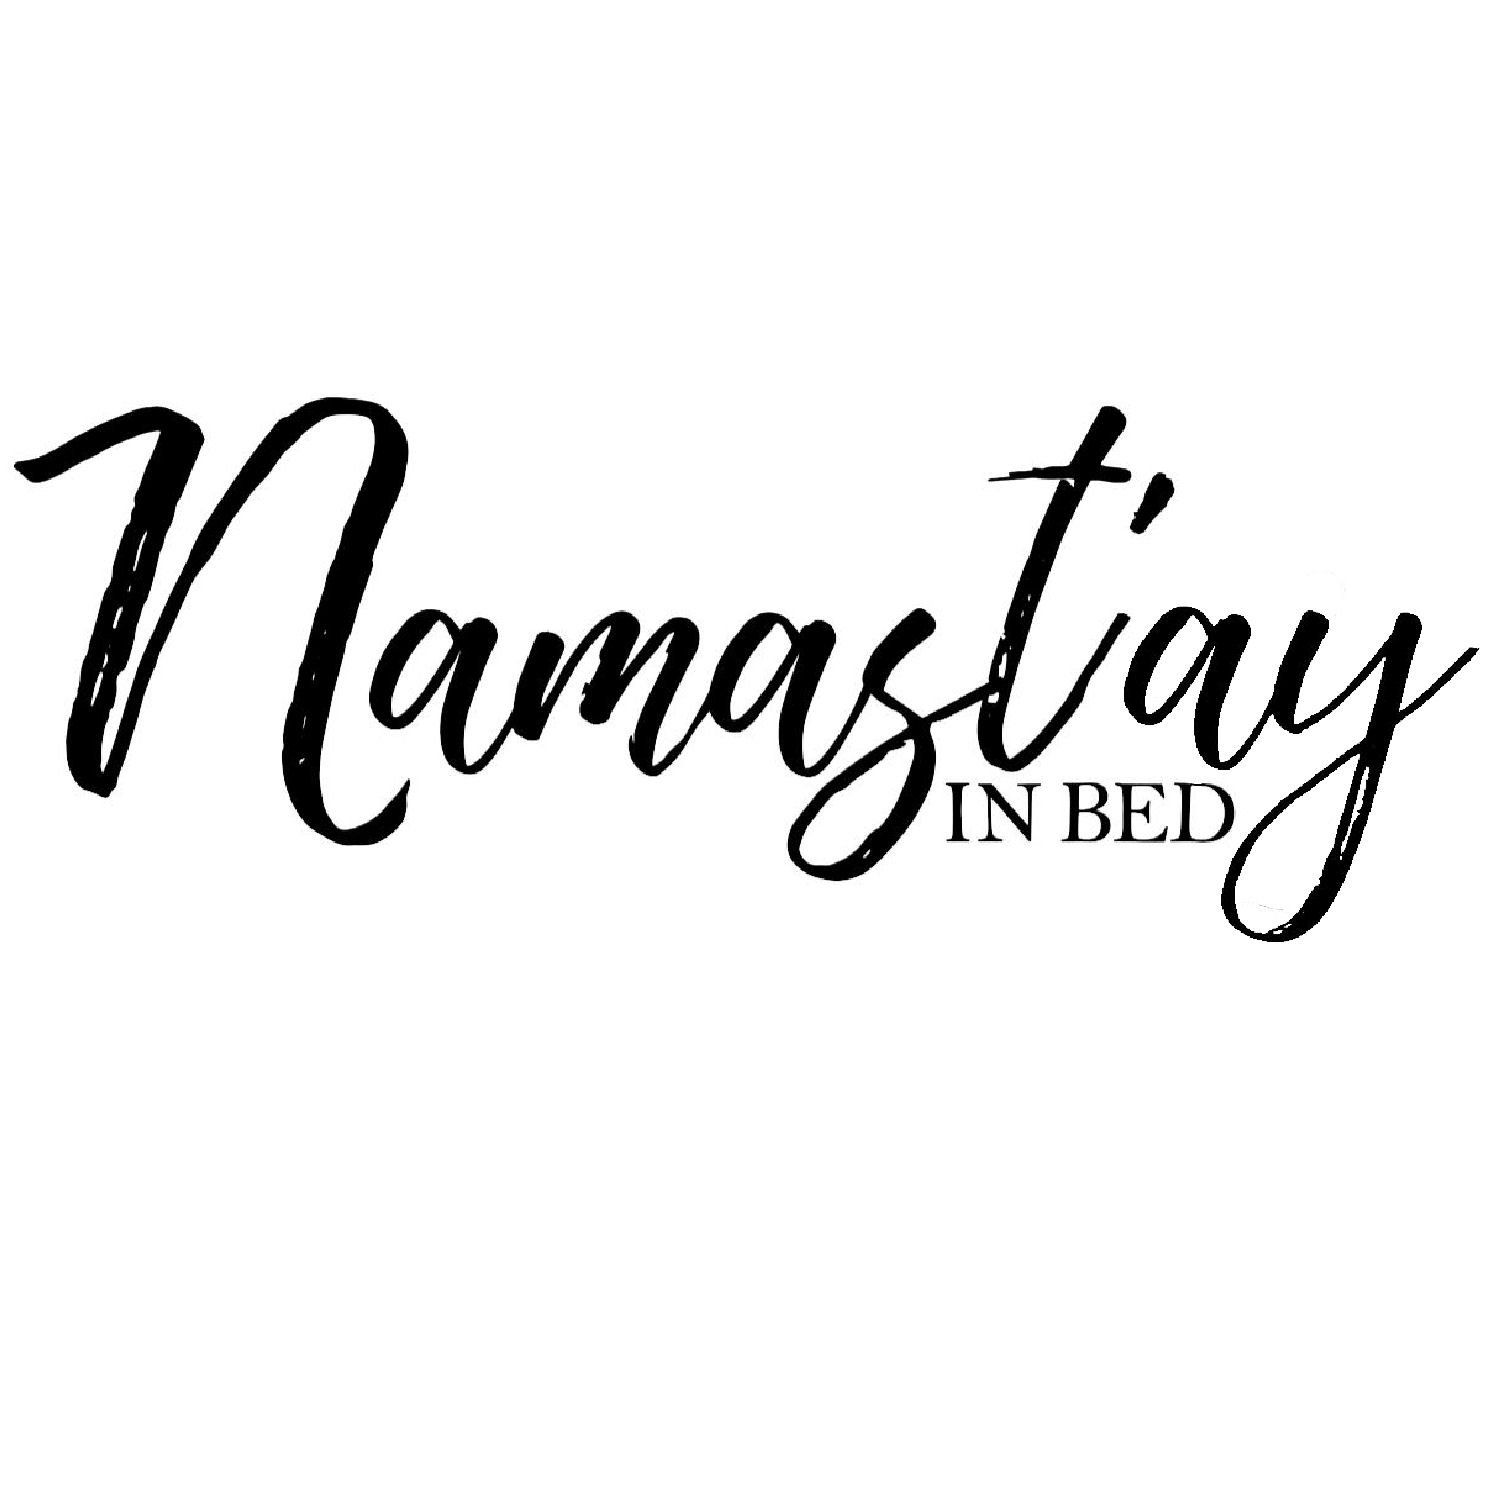 Namast Ay In Bed Sign Namaste In Bed Bedroom Wall Art Namaste Sign Calligraphy Wall Decor Bedroom Signs Digit Namaste Sign Namastay In Bed Bedroom Signs